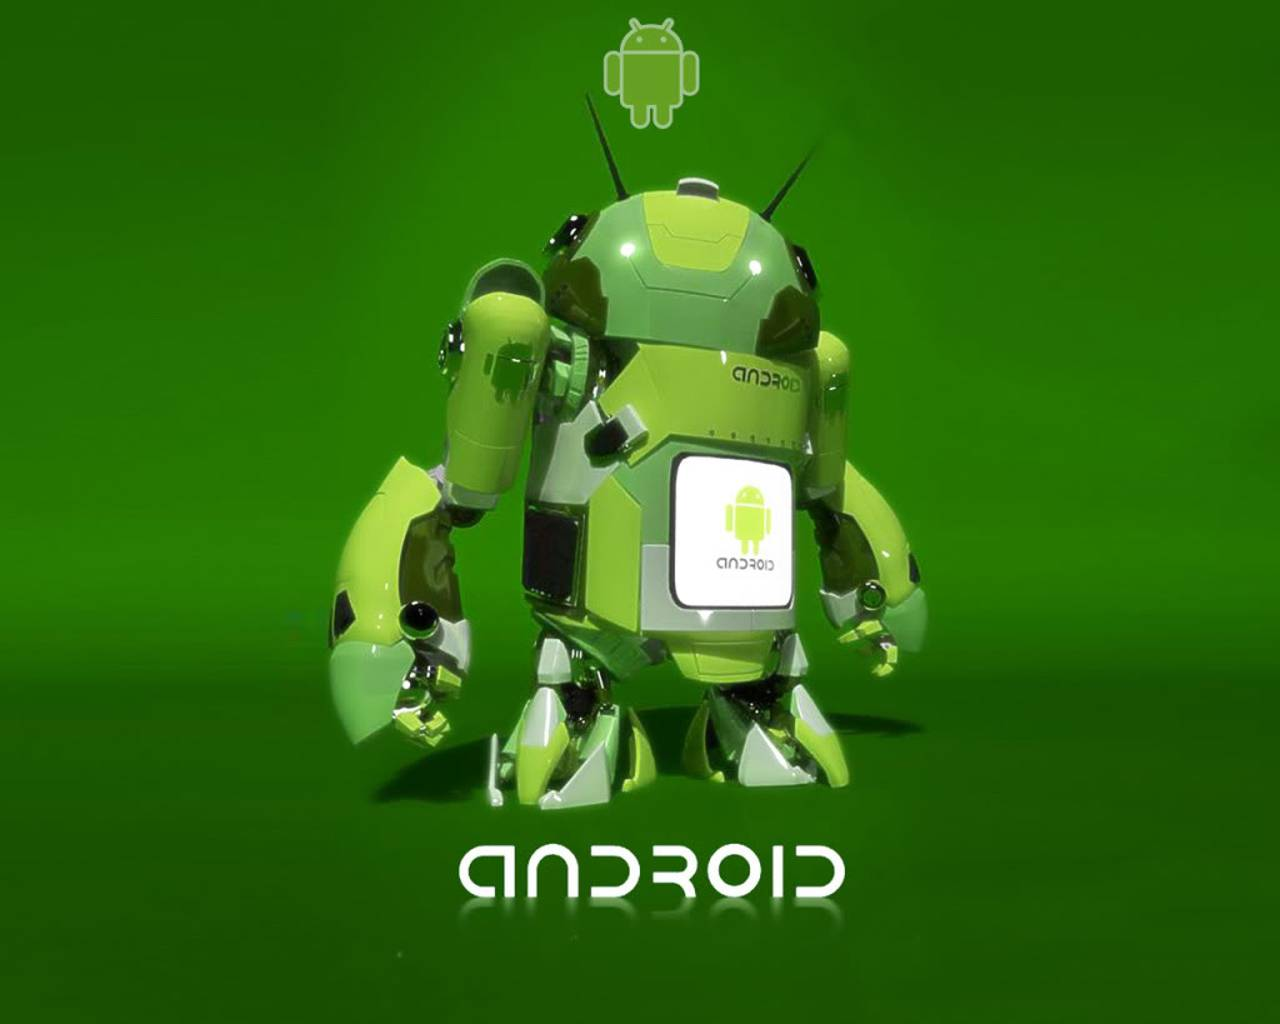 3d android super robot wallpaper – HD 2013 HQ Desktop